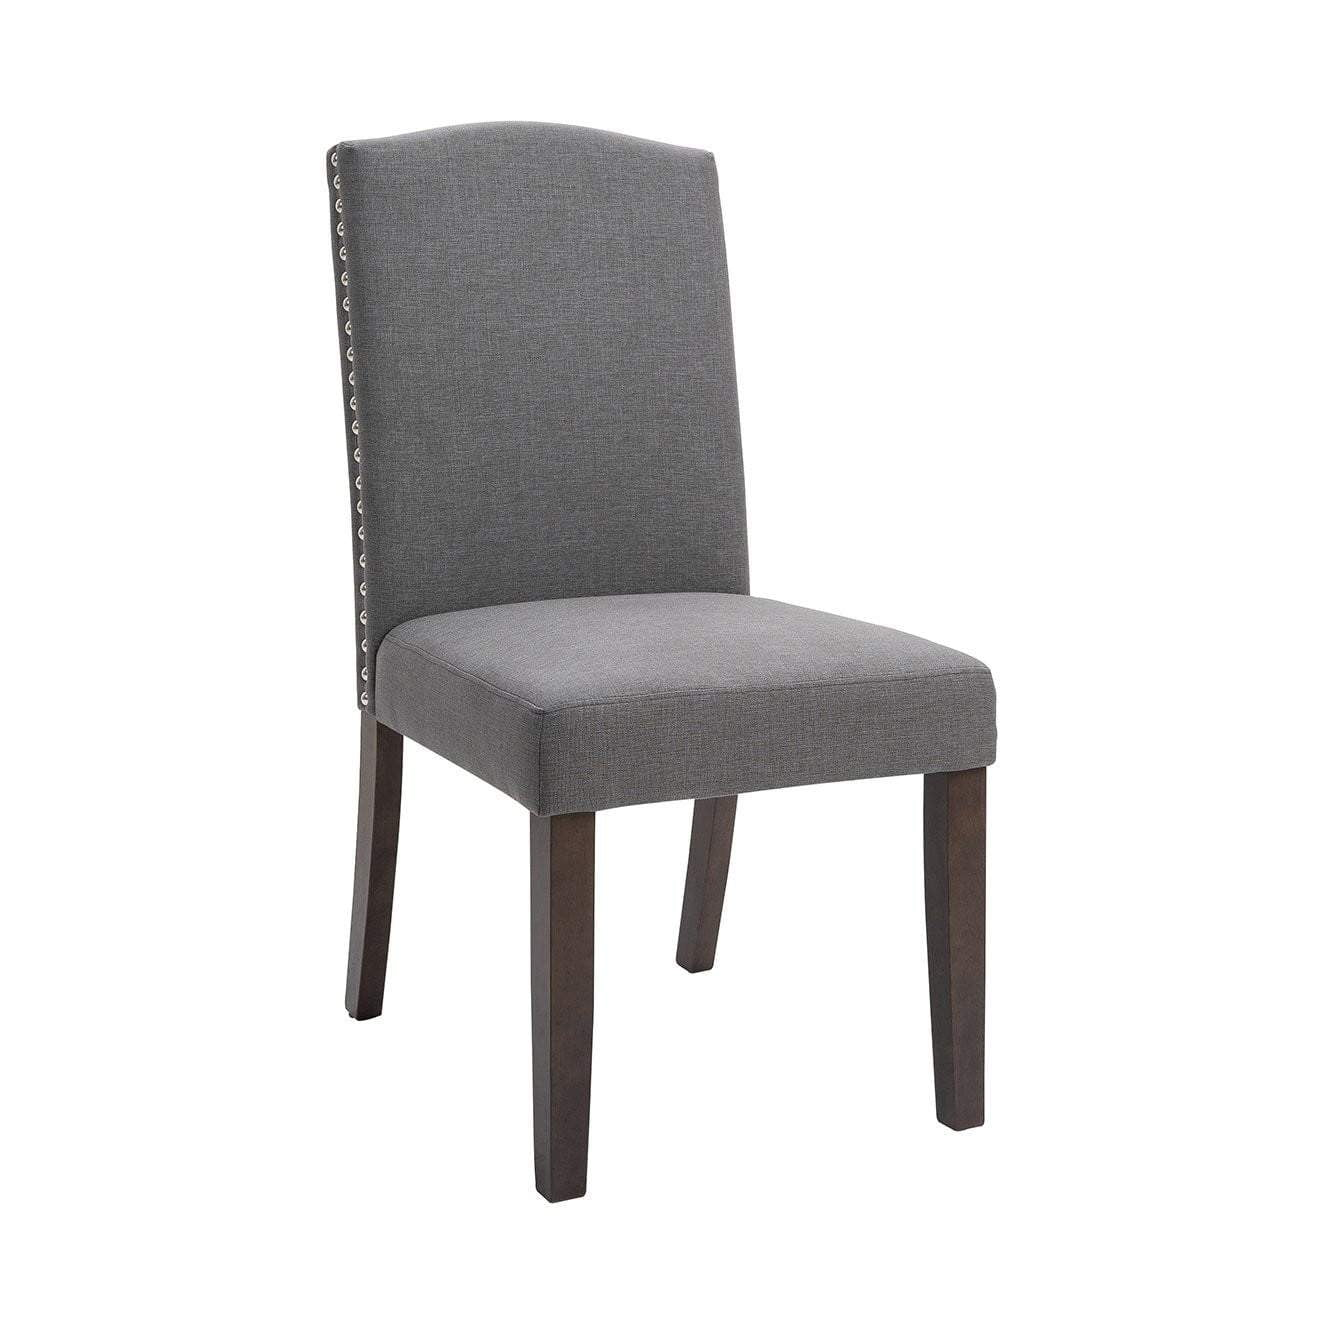 Lethbridge Studded Dining Chair Light Grey  | Luxury Furniture Sydney